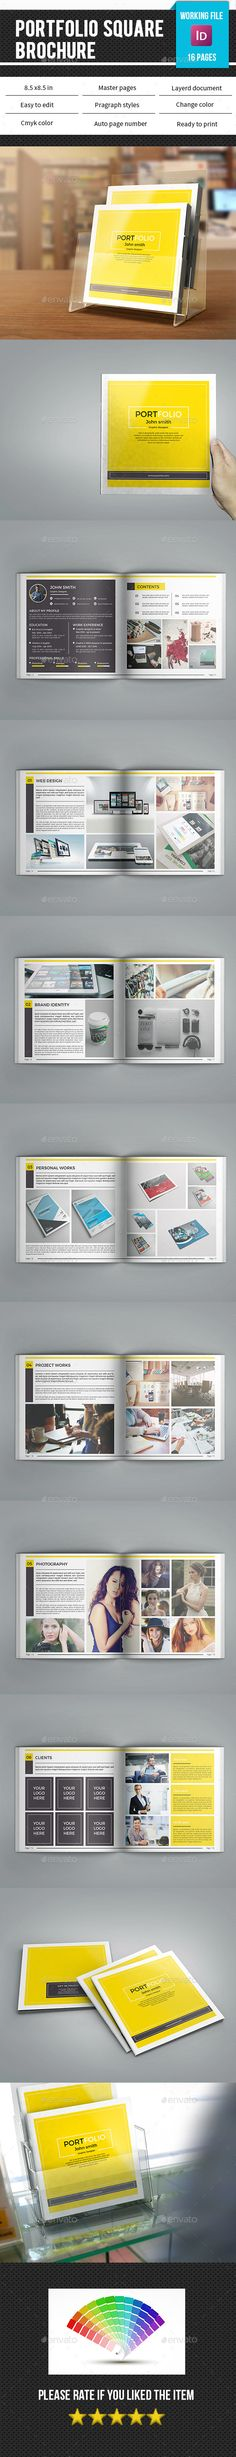 Haweya Landscape Brochure 16 Pages V03 Brochures, Corporate - business company profile template